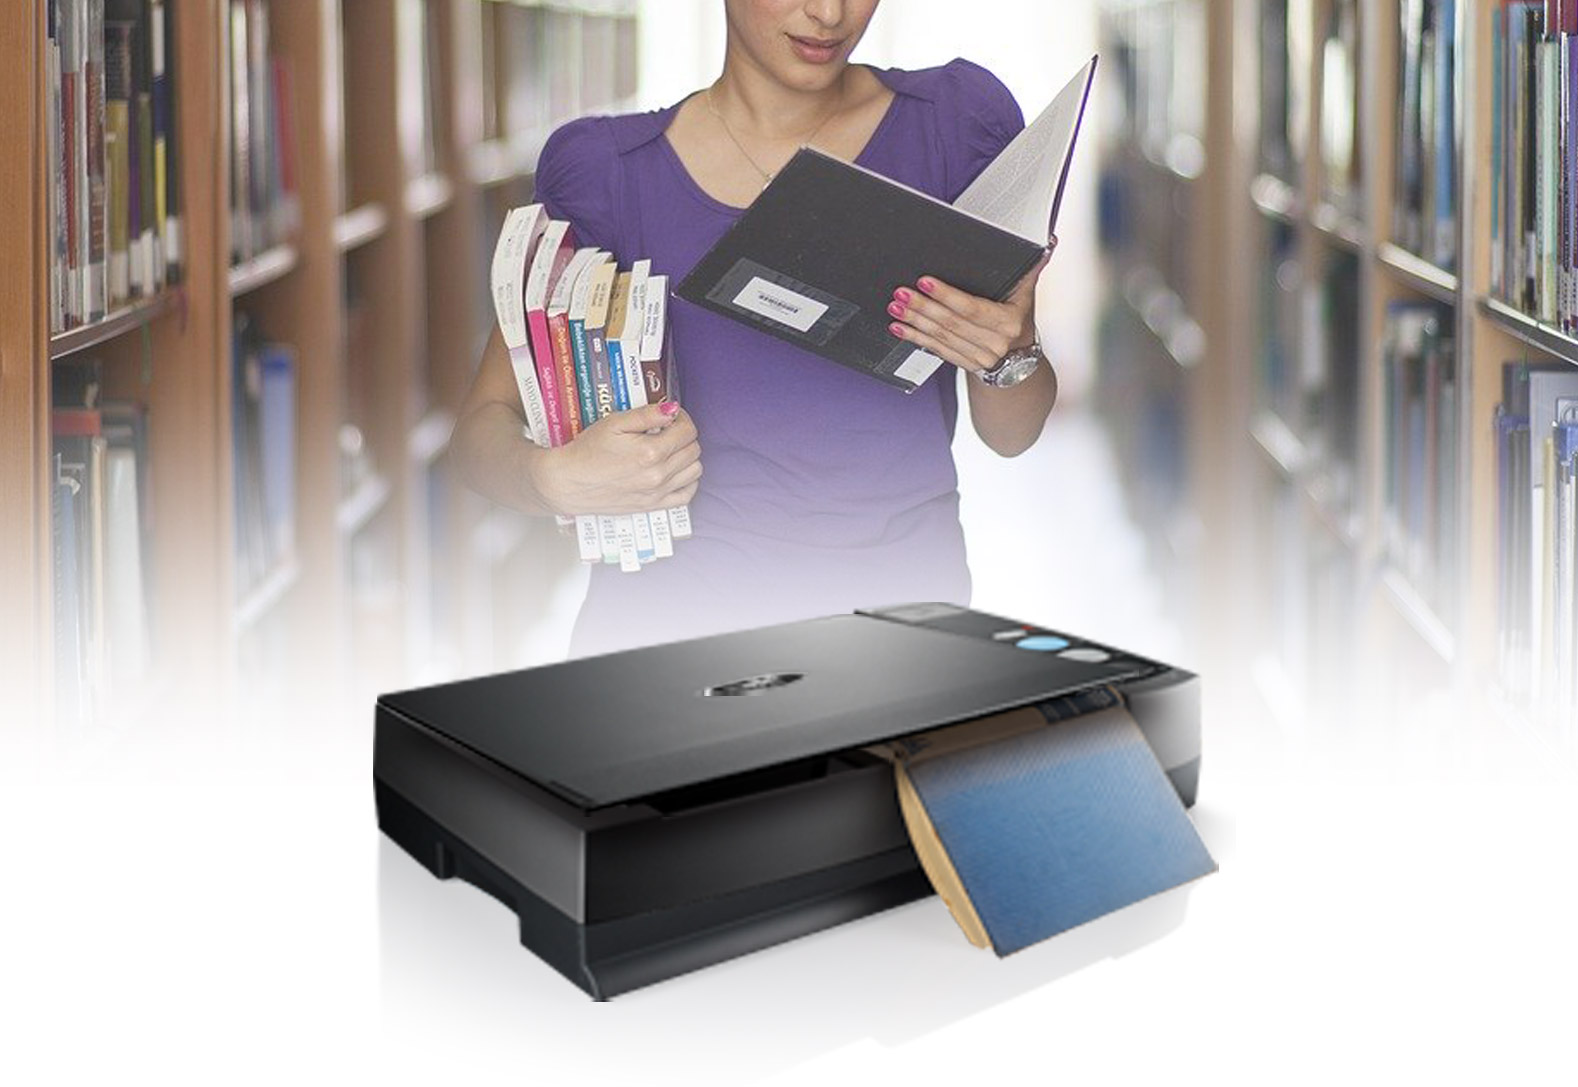 Looking for an easy way to scan books into digital files